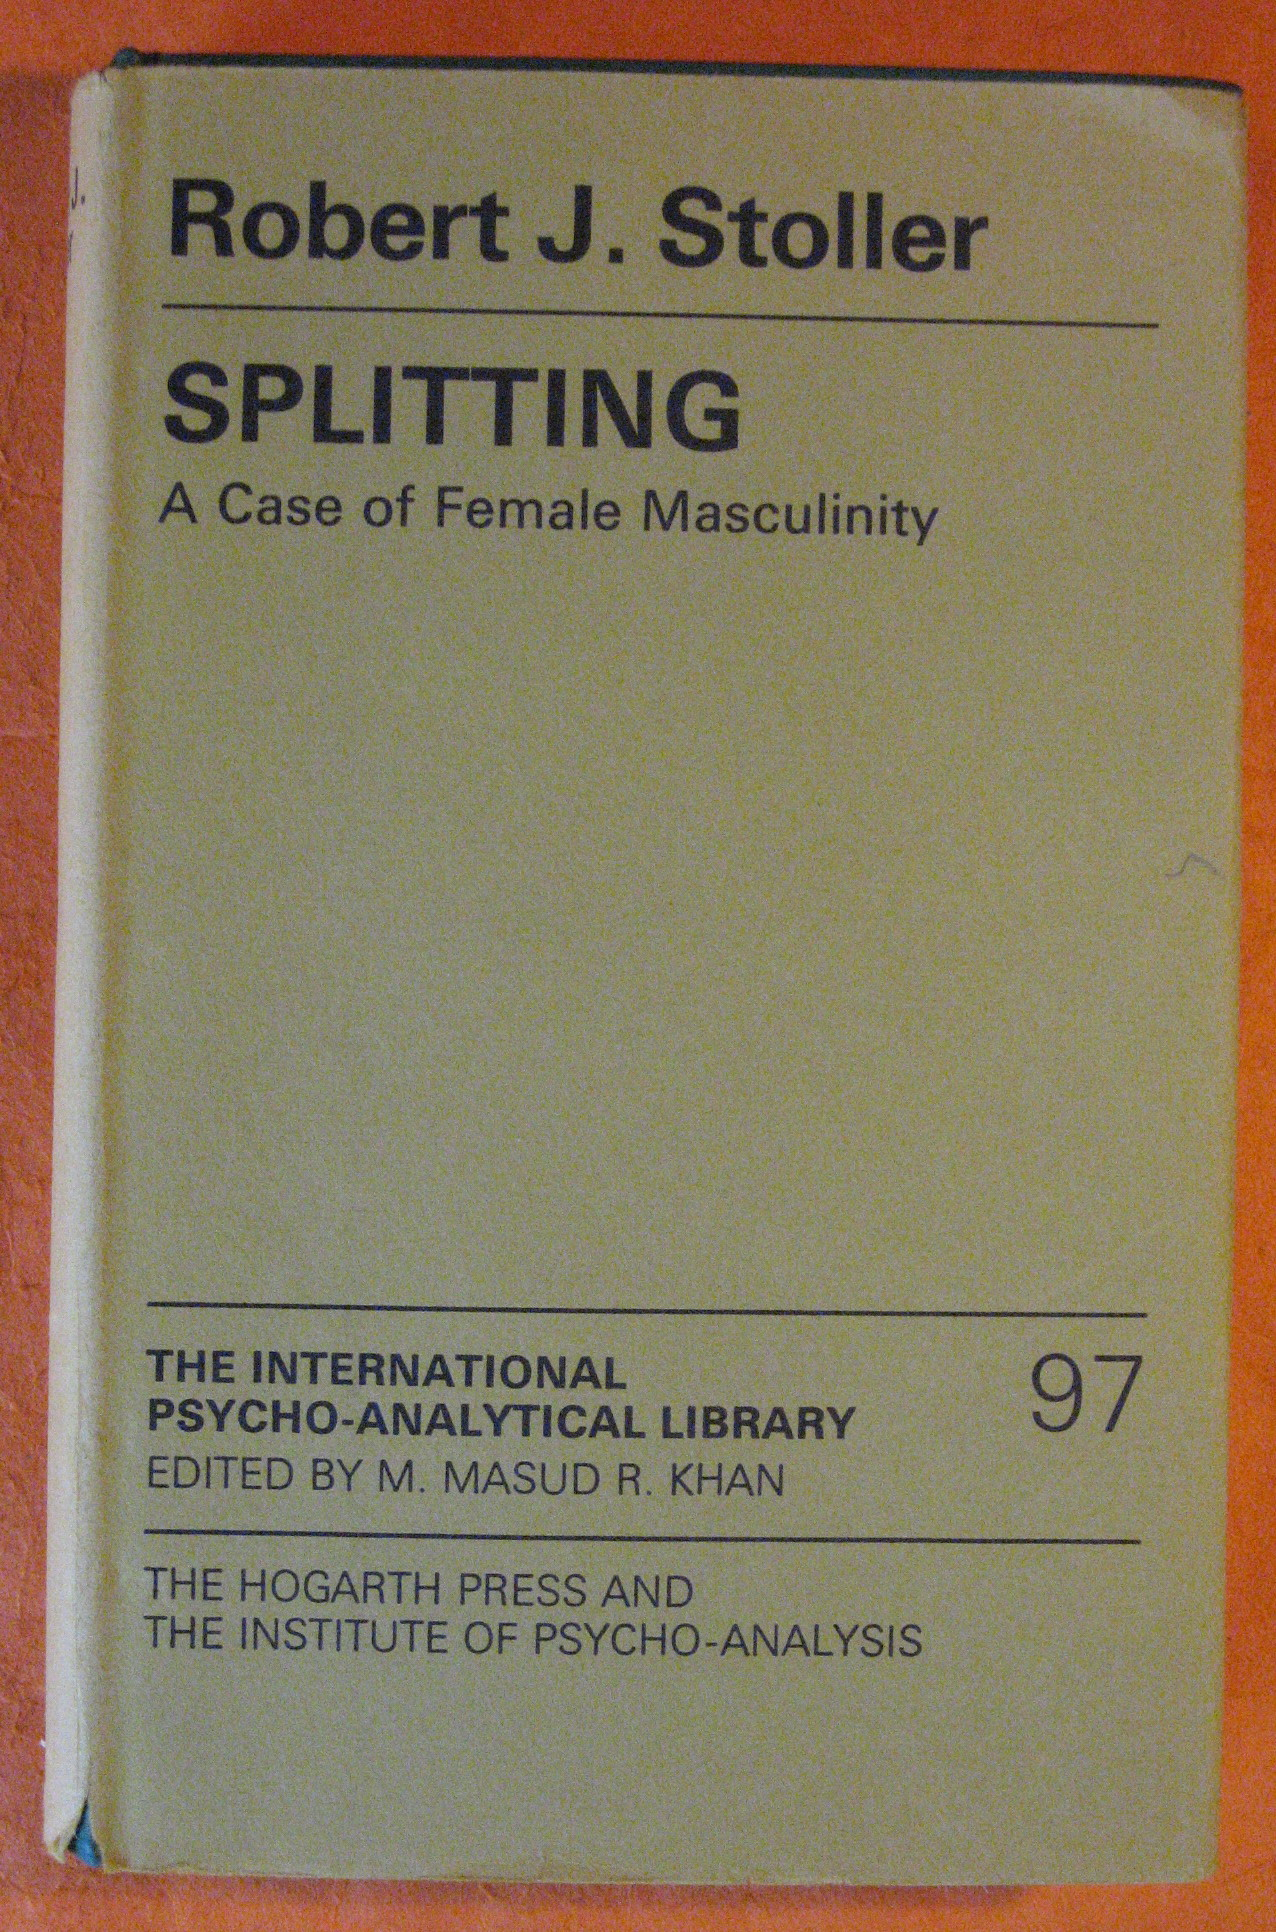 Splitting: Case of Female Masculinity (International Psycho-Analysis Library No. 97), Stoller, Robert J.